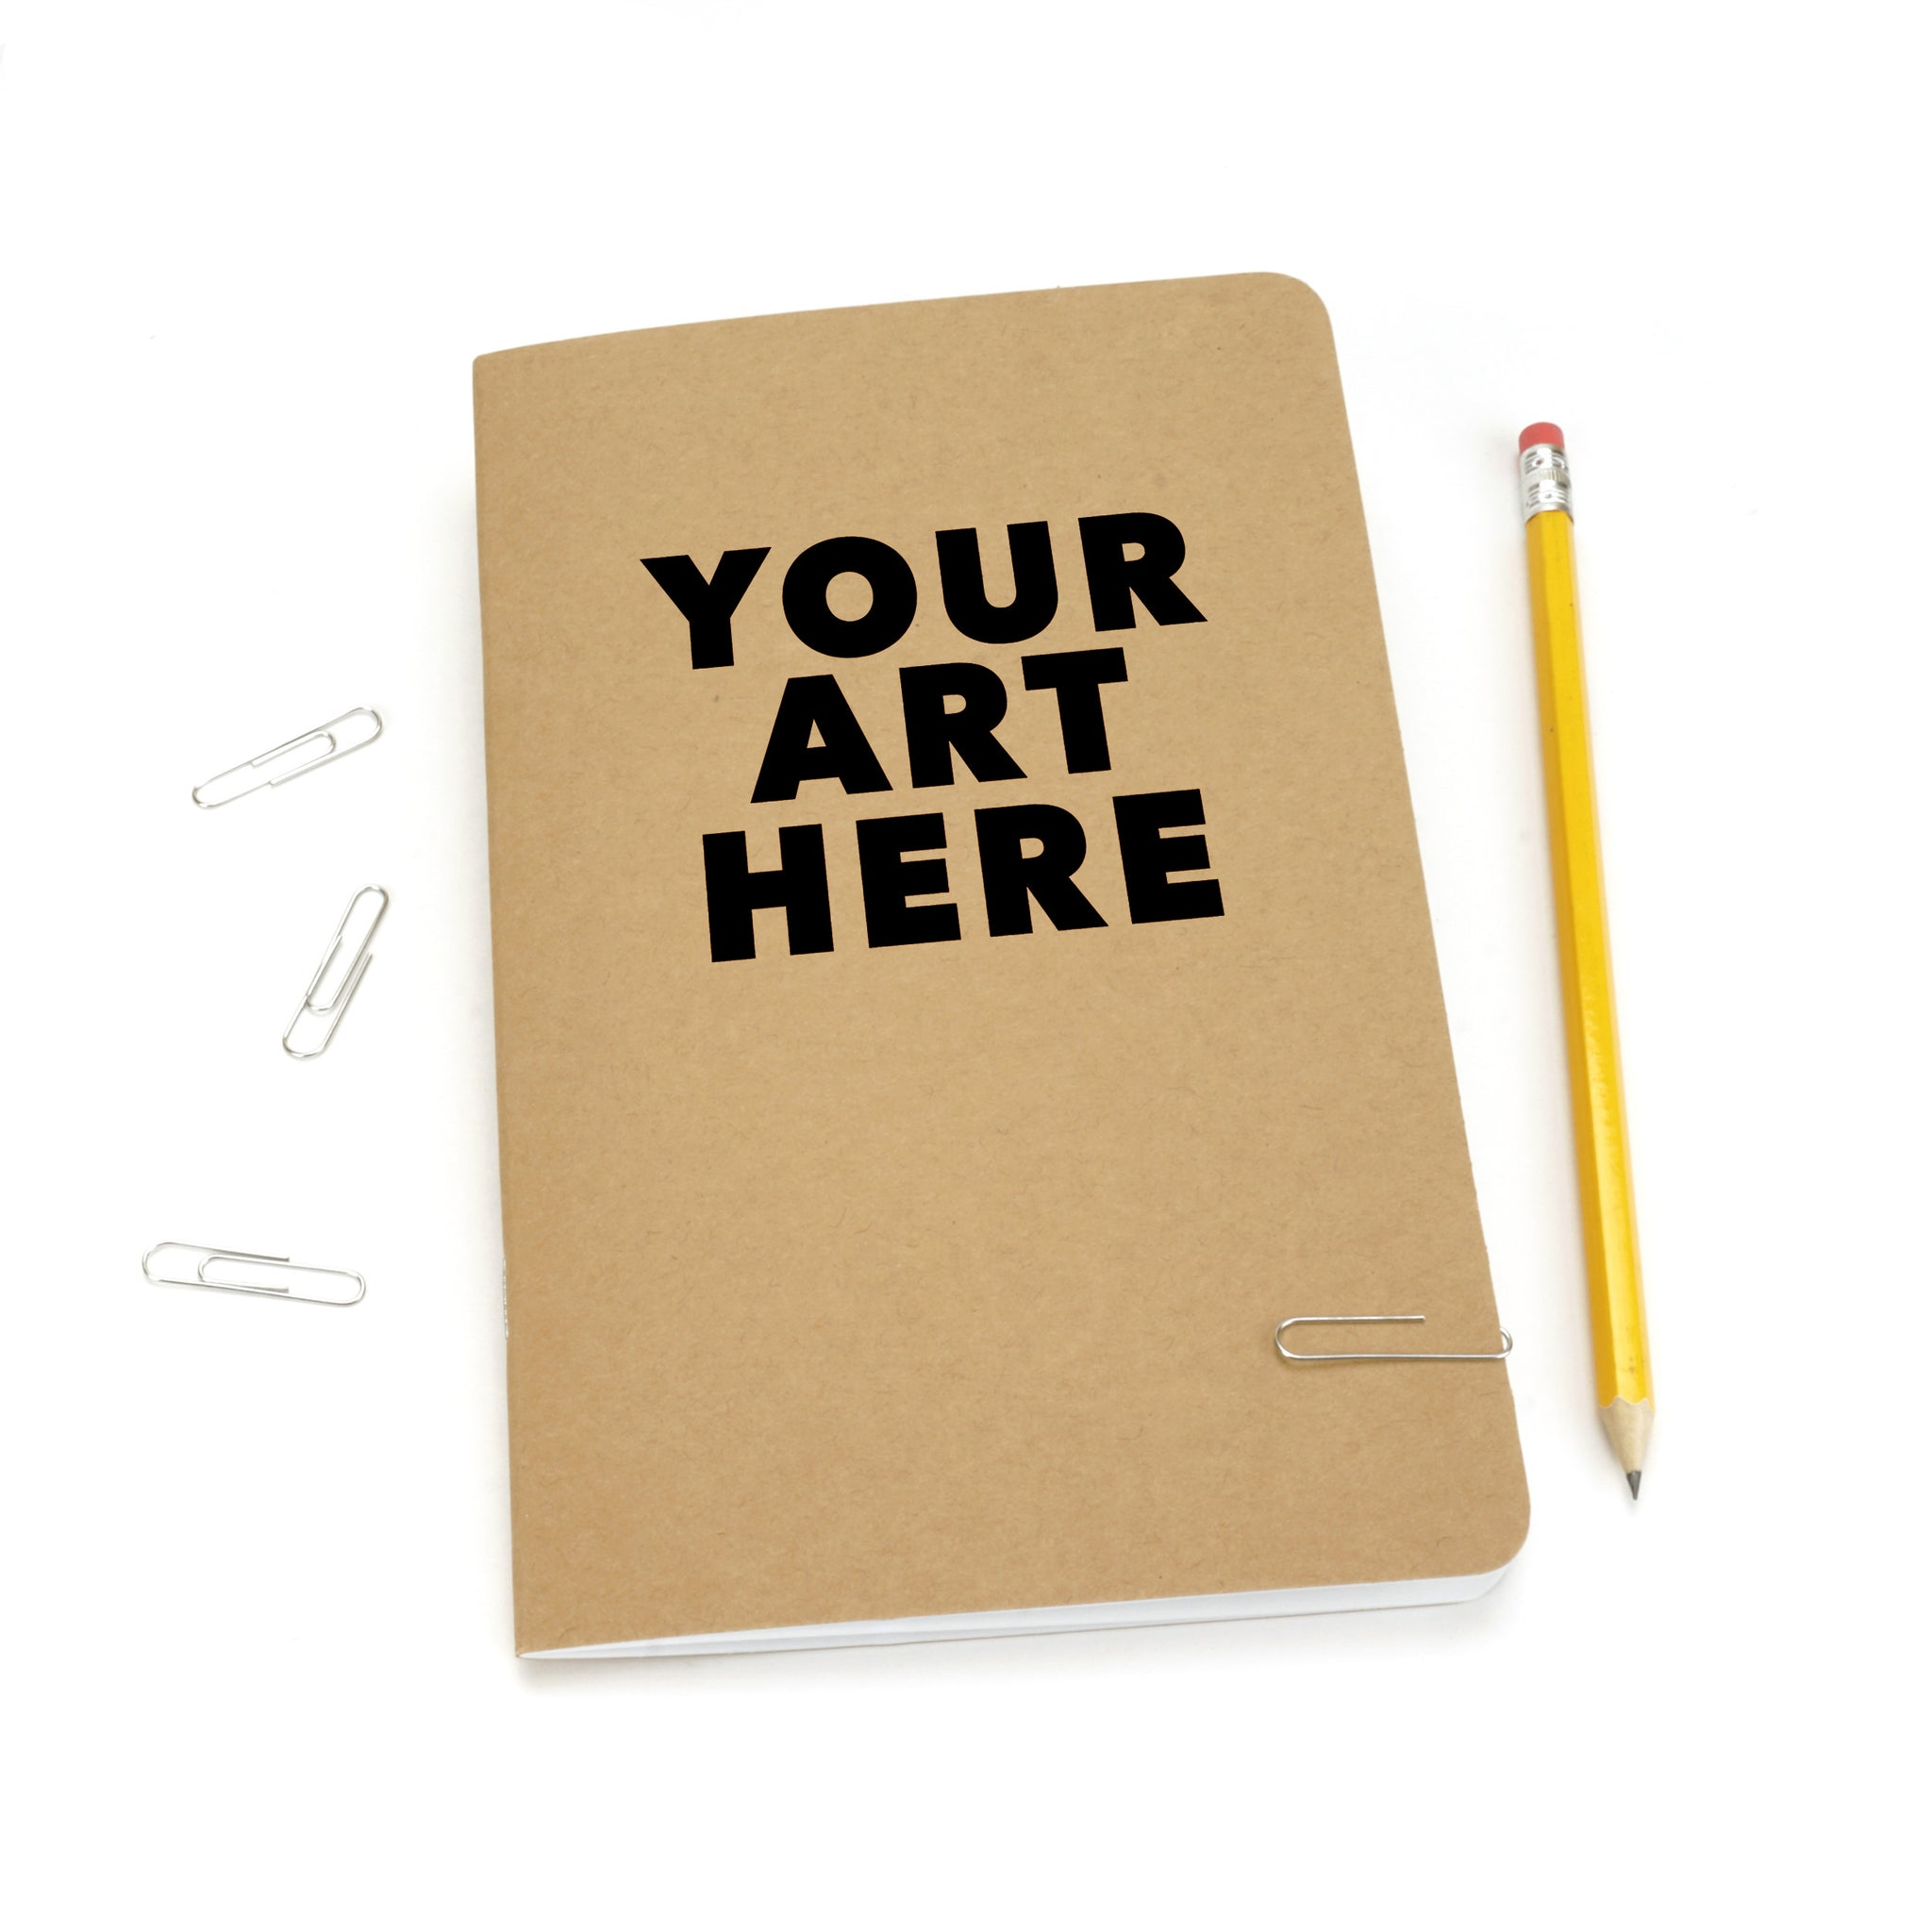 Custom Printed Kraft Cover Notebooks, Blank Pages, Black Ink Only, As Low As $1.50 Each